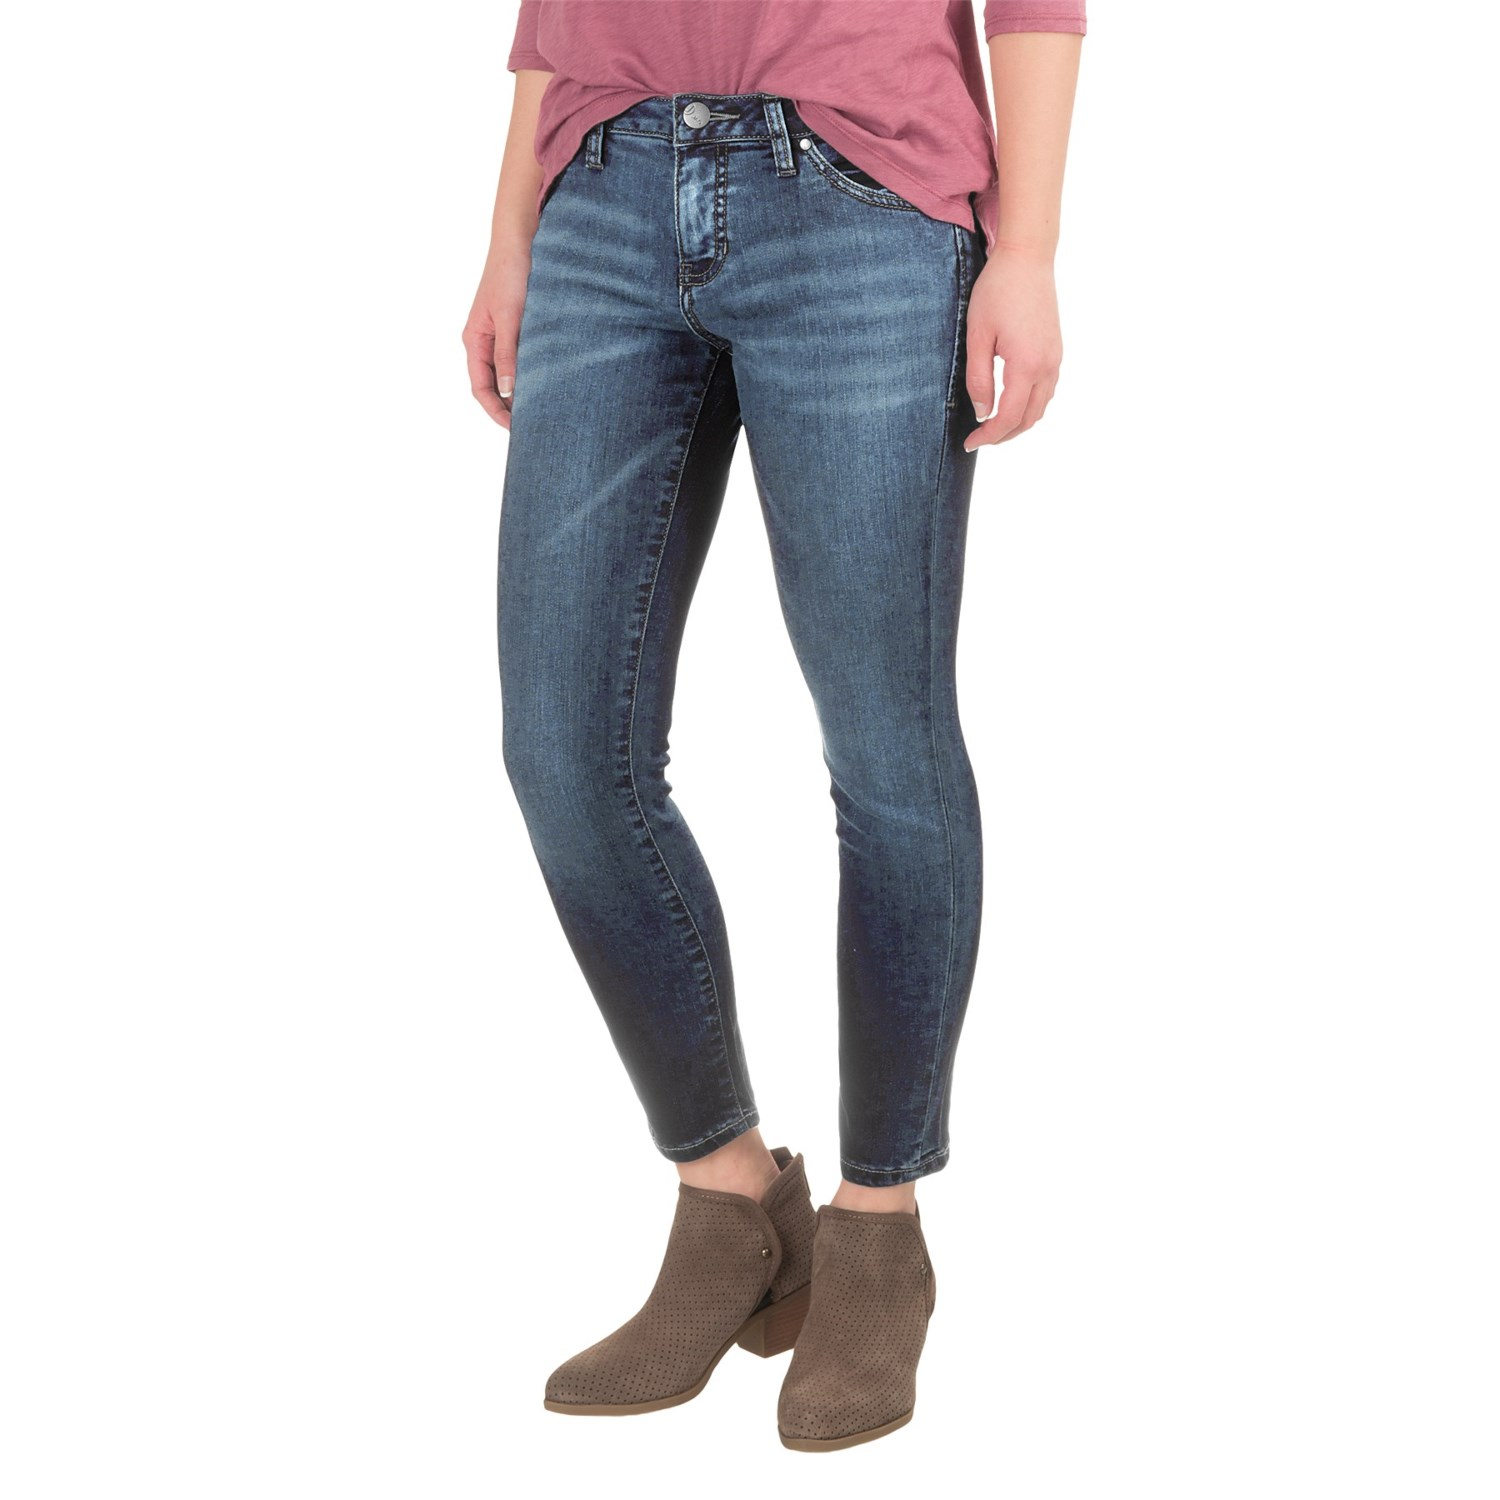 JAG Penelope Slim Ankle Jeans (For Women) - Save 57%